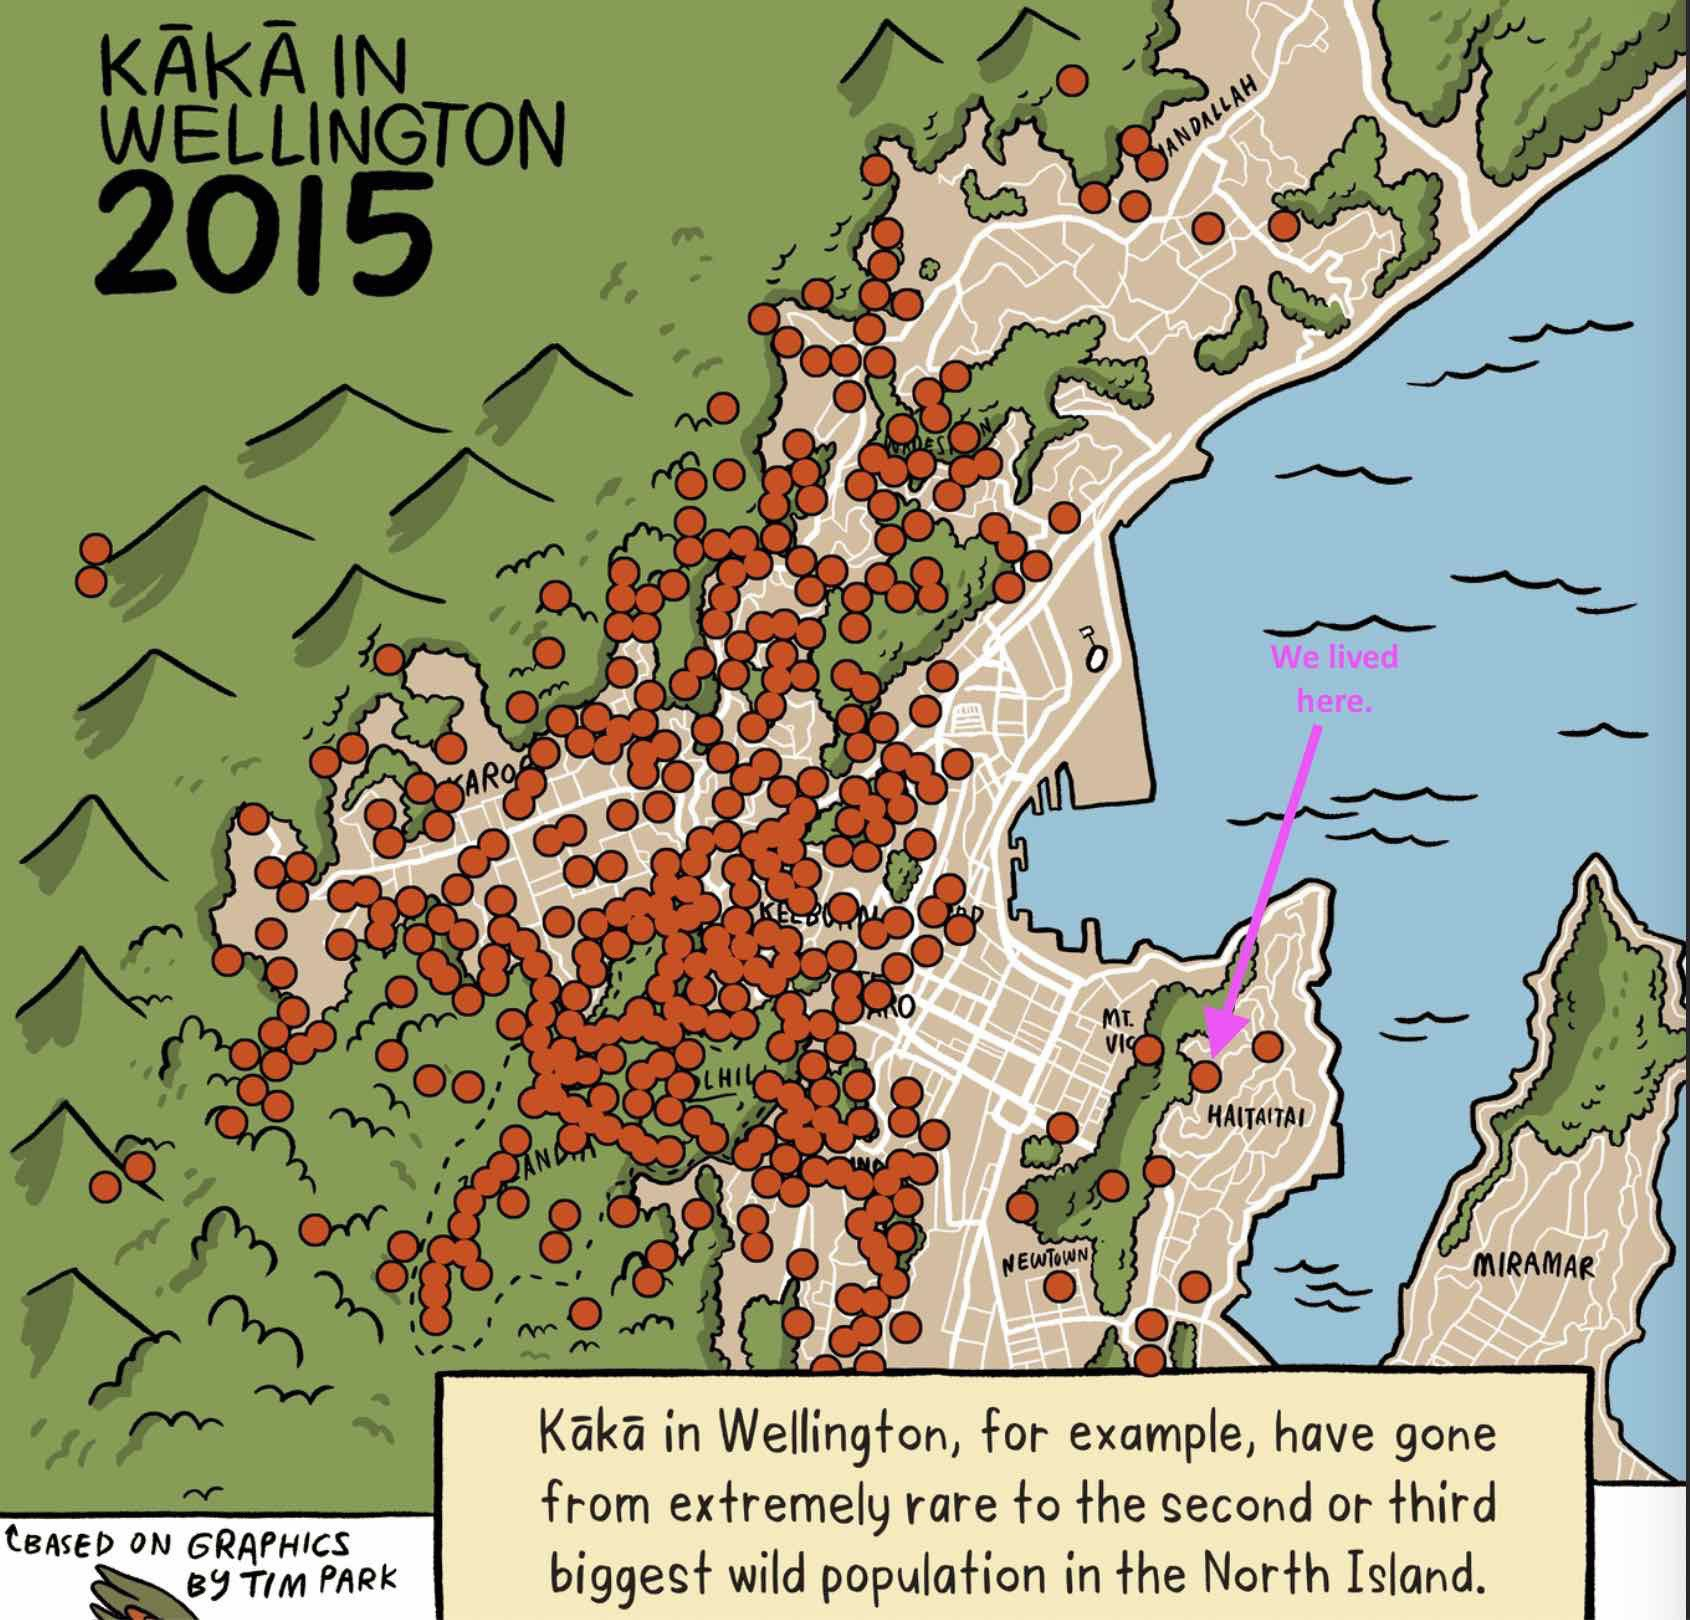 Map of Kākā distibution in 2015.